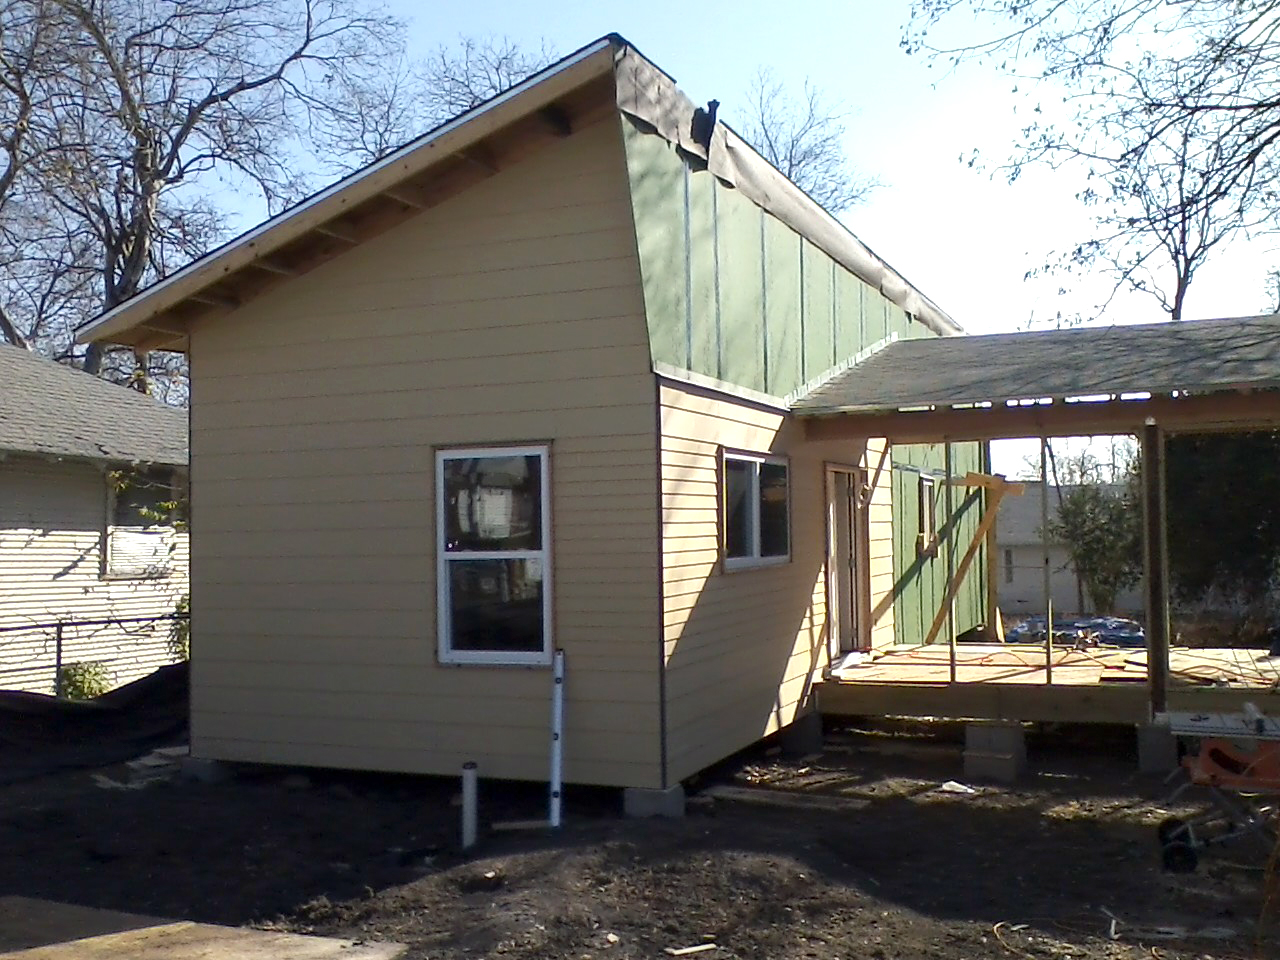 sustainABLEhouse under construction in Dolphin Heights.